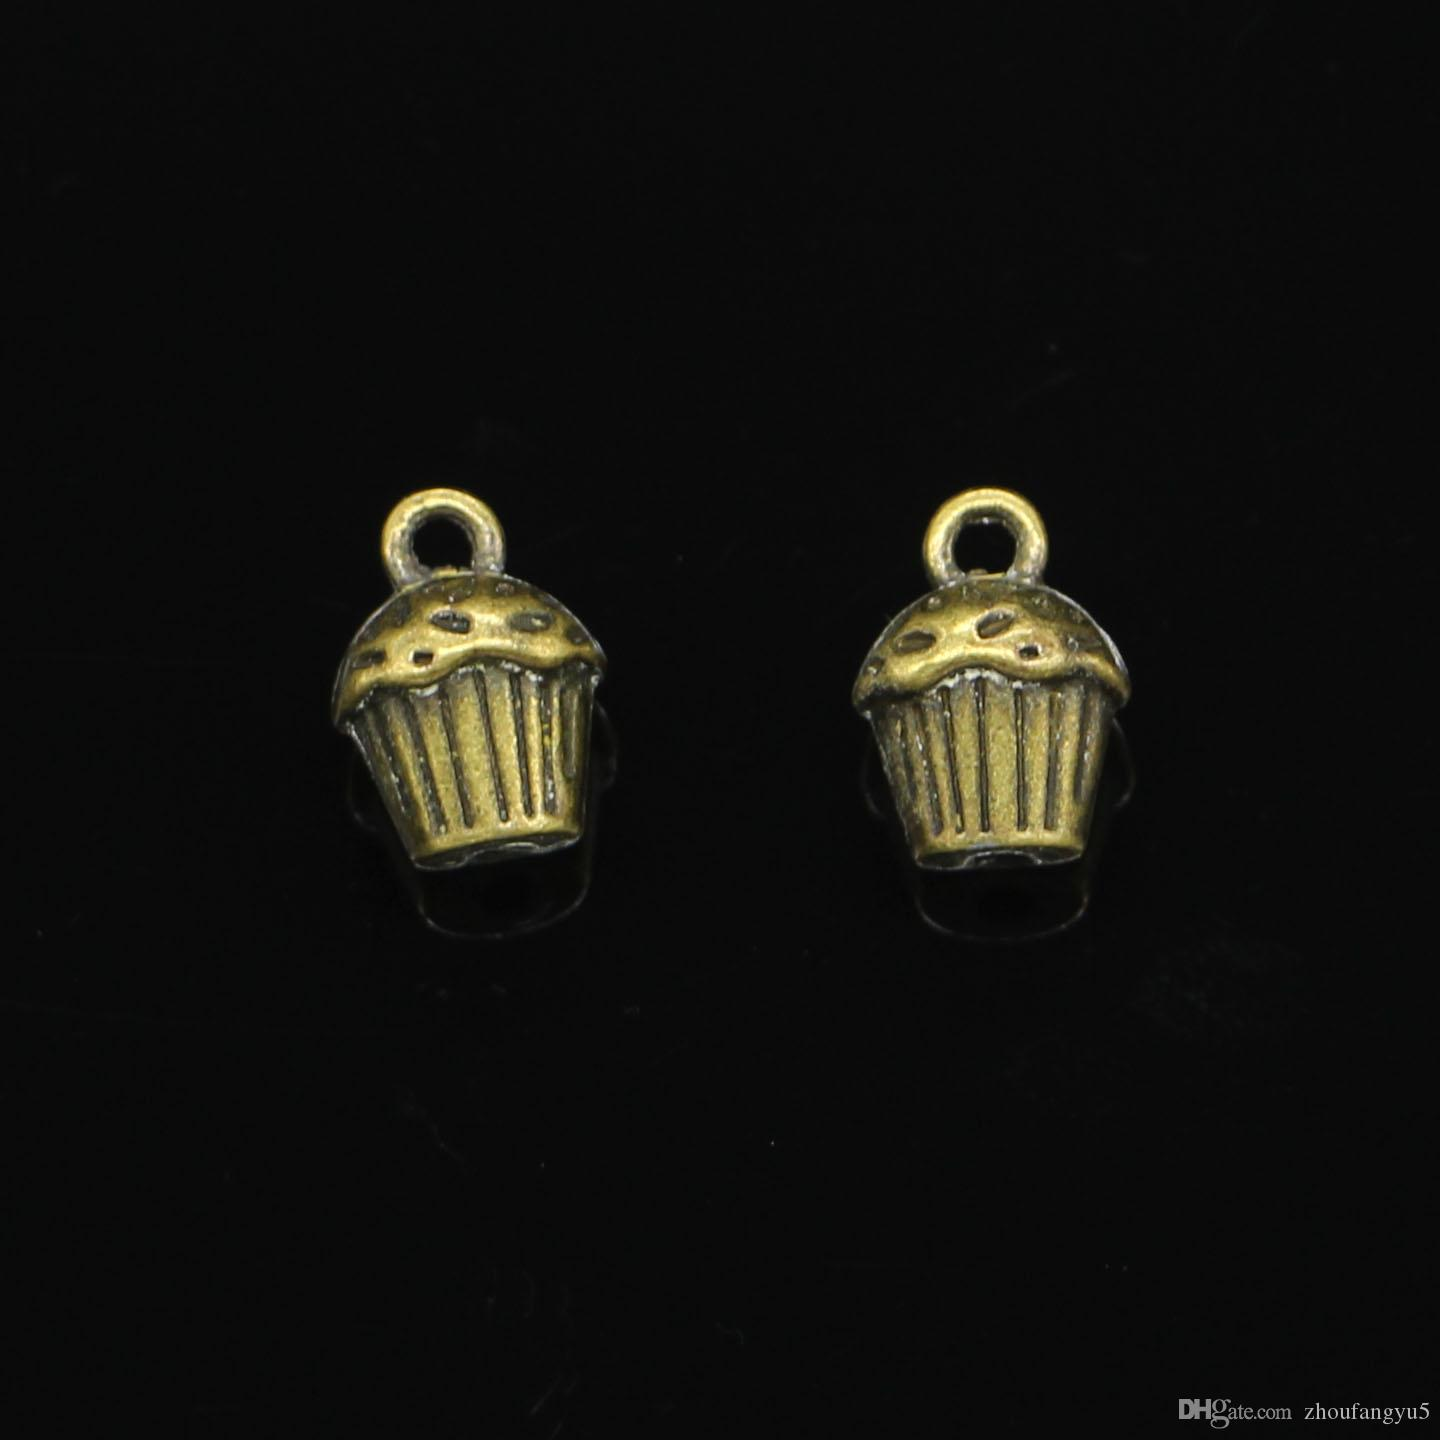 50pcs Zinc Alloy Charms Antique Bronze Plated 3D cupcake cake Charms for Jewelry Making DIY Handmade Pendants 13*10*8mm